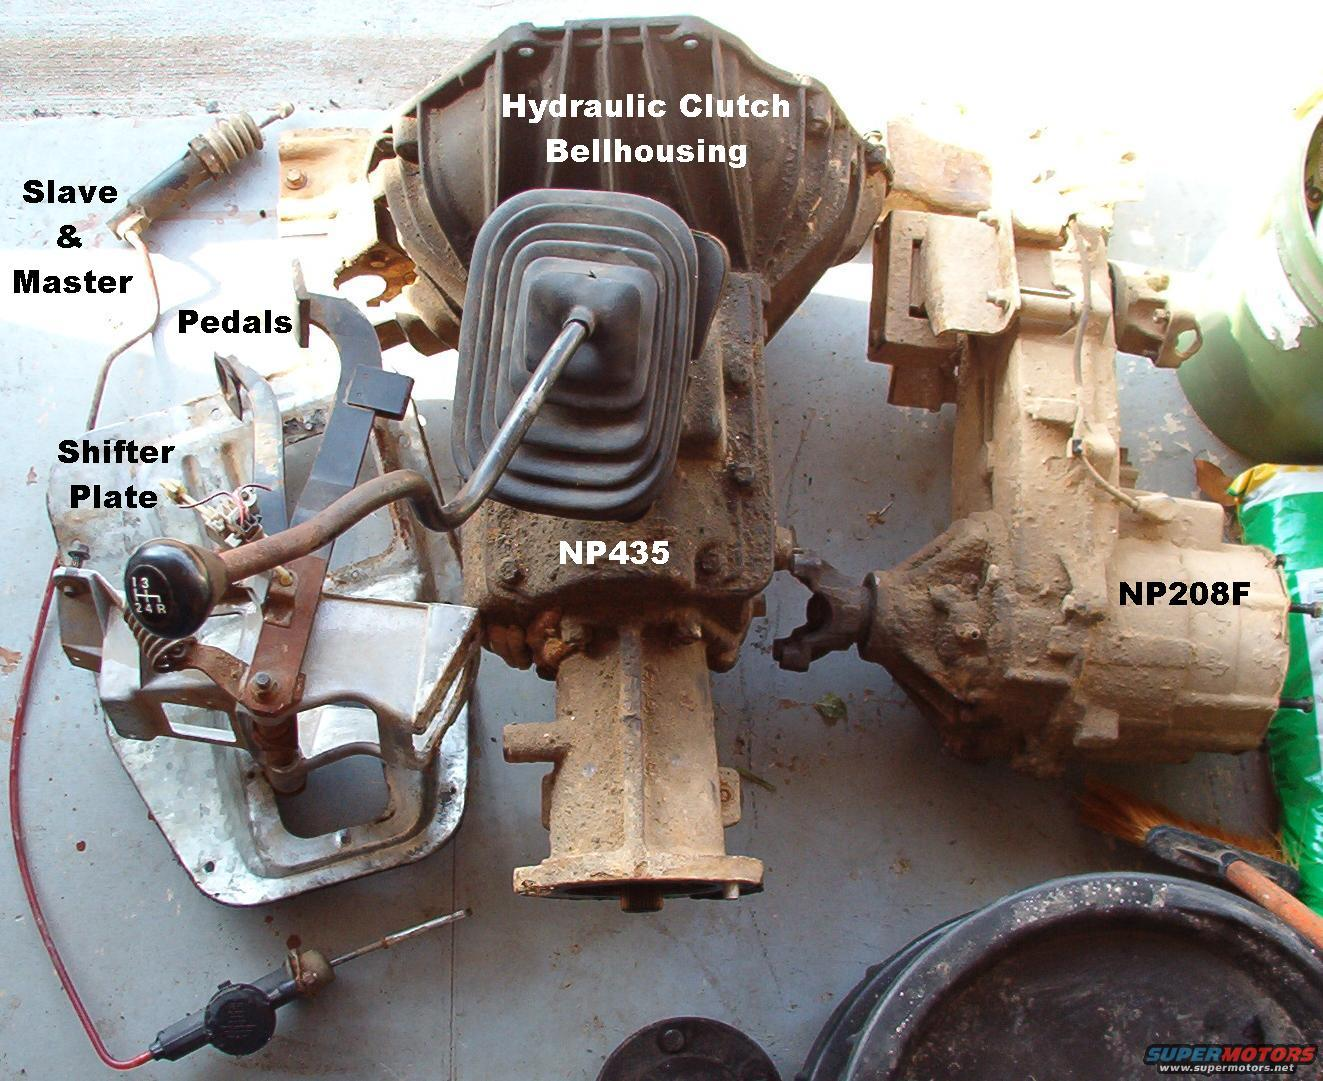 1983 Ford Bronco Hydraulic Clutch Picture Supermotors Net